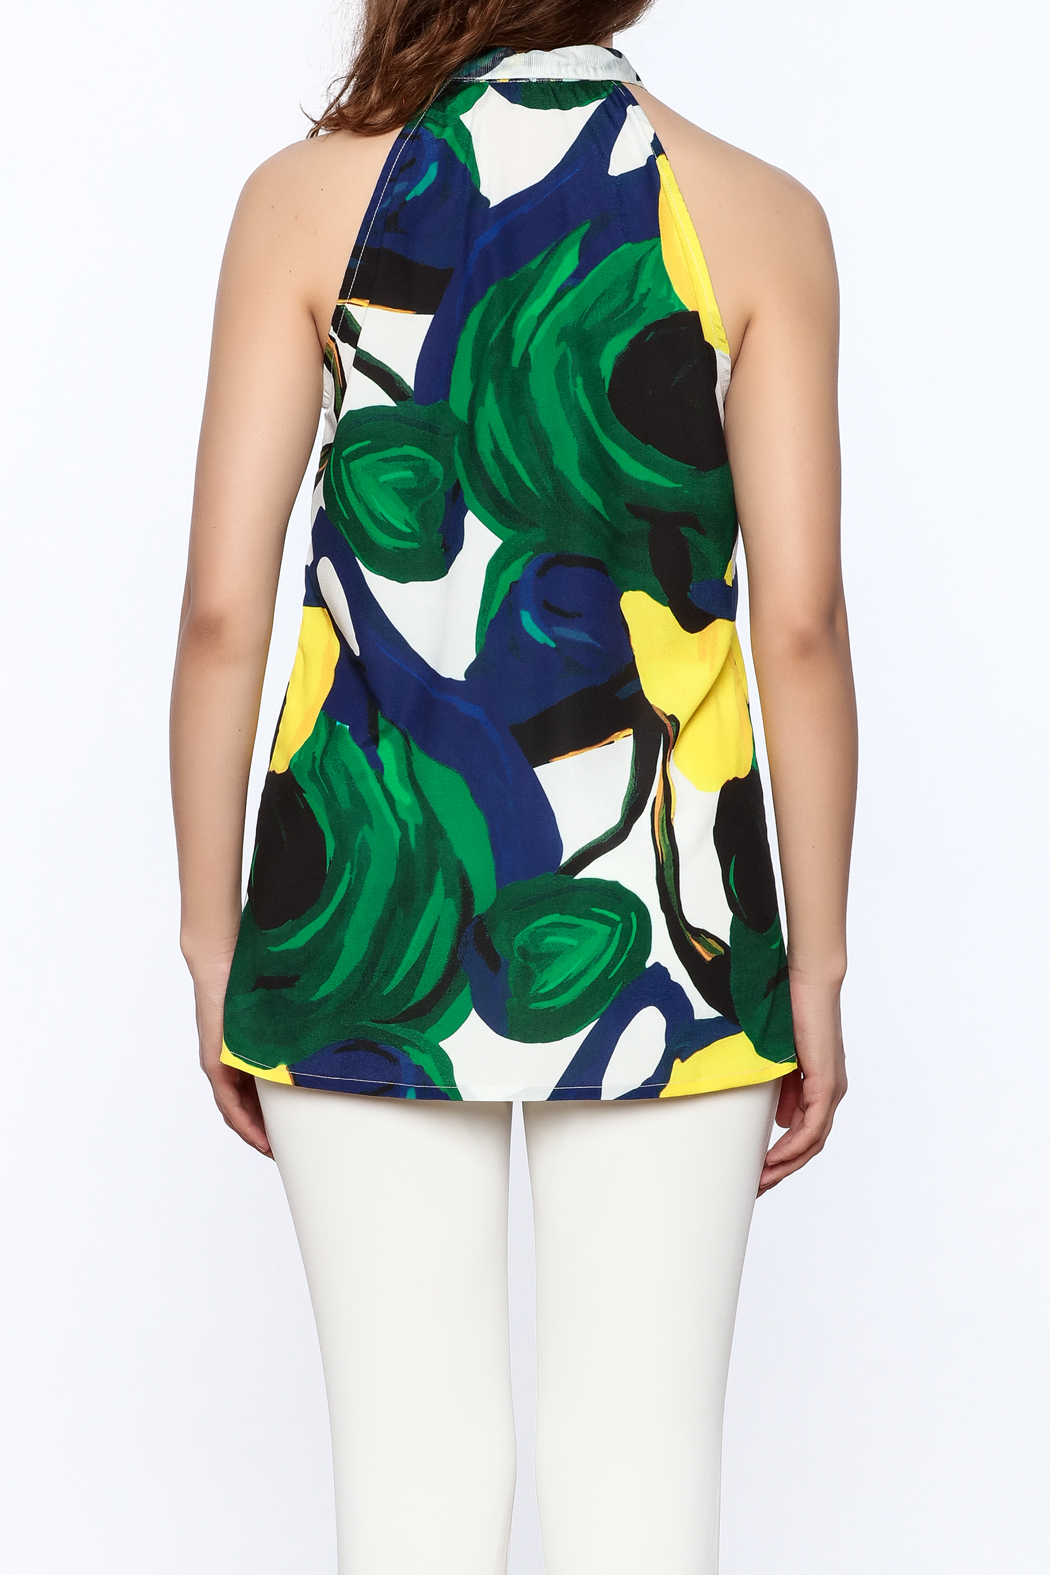 KAS New York Amelia Abstract Print Top - Back Cropped Image